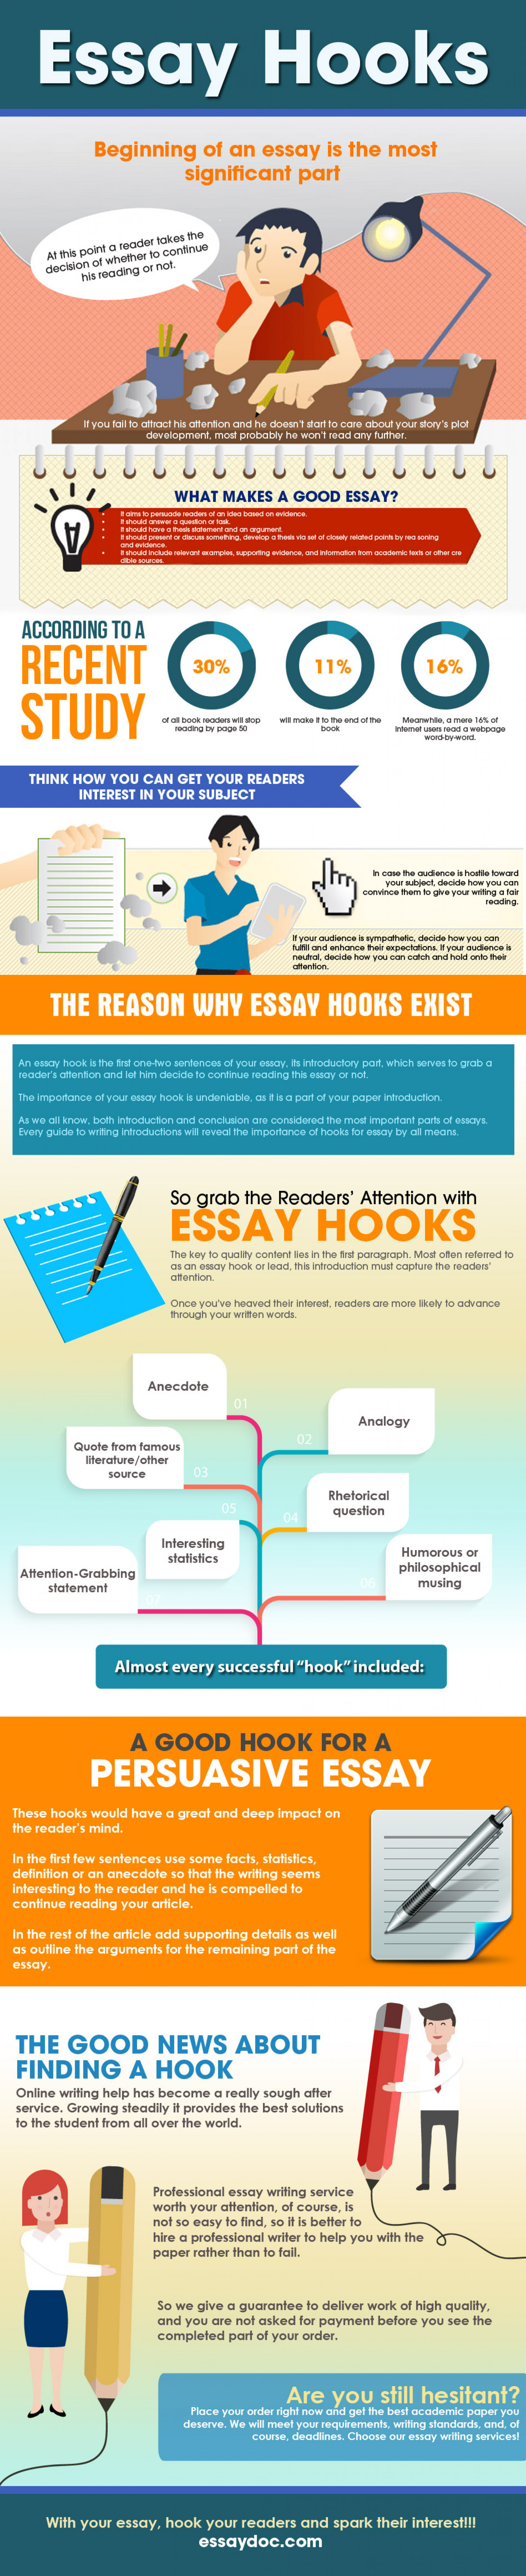 how to write the perfect hook for an essay